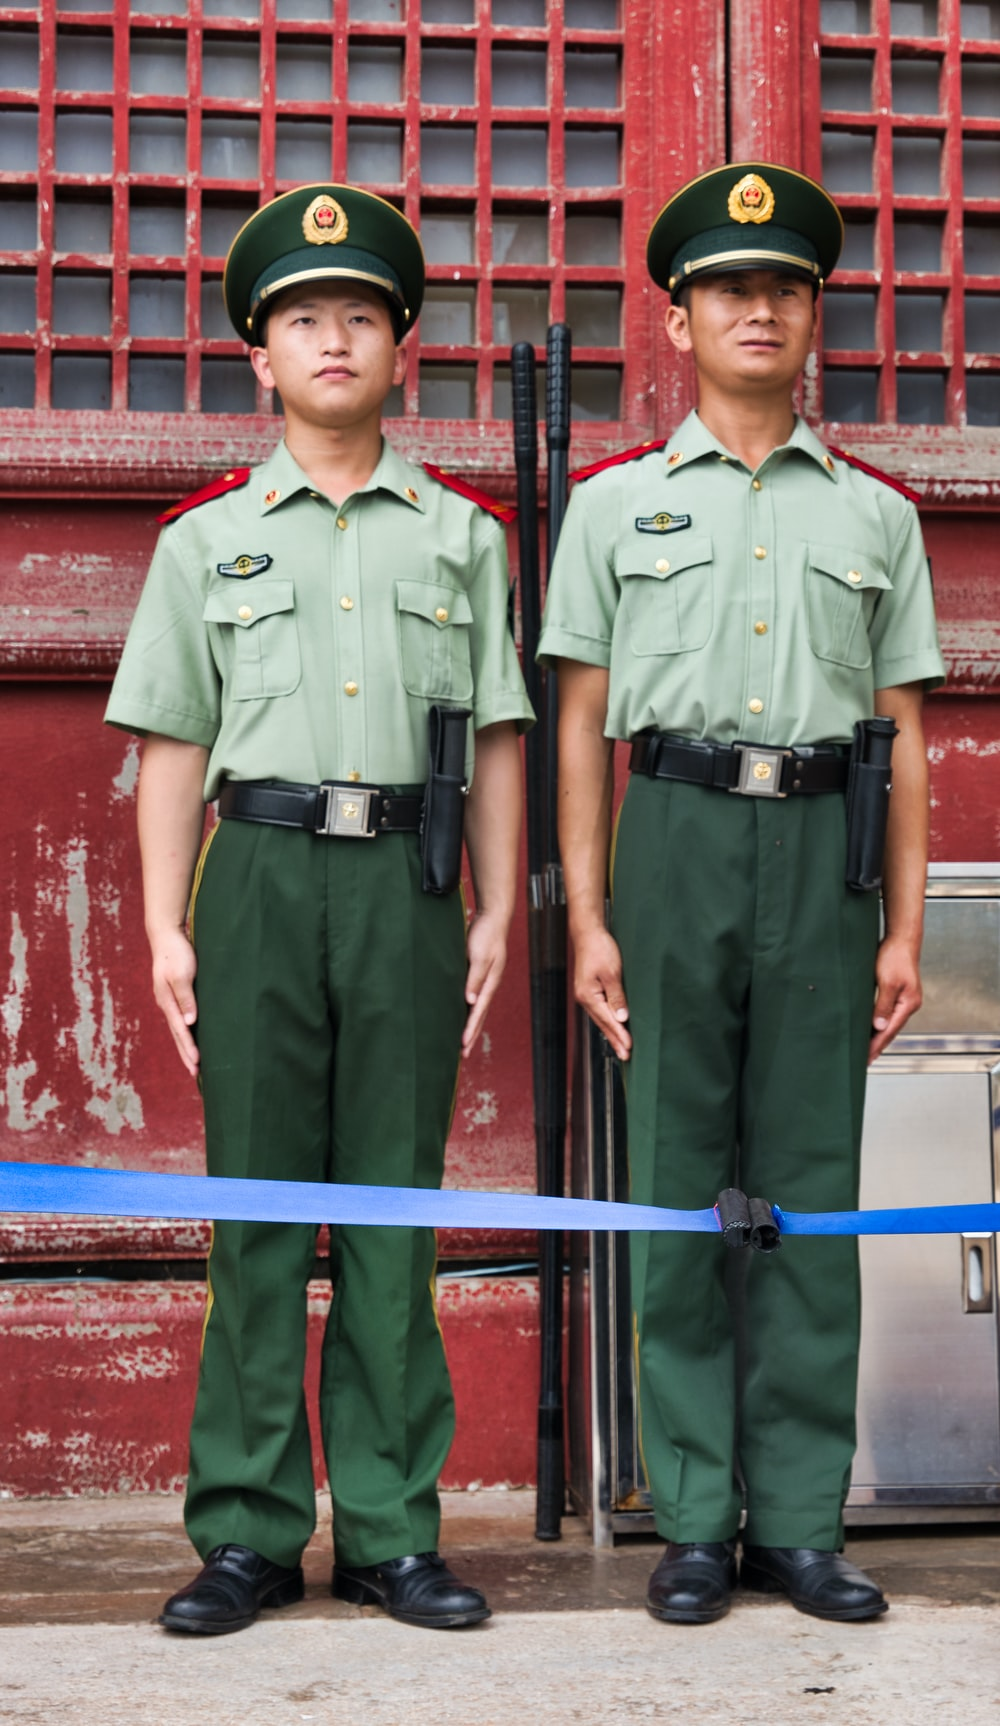 two boys wearing green collared button-up shirt with pockets standing